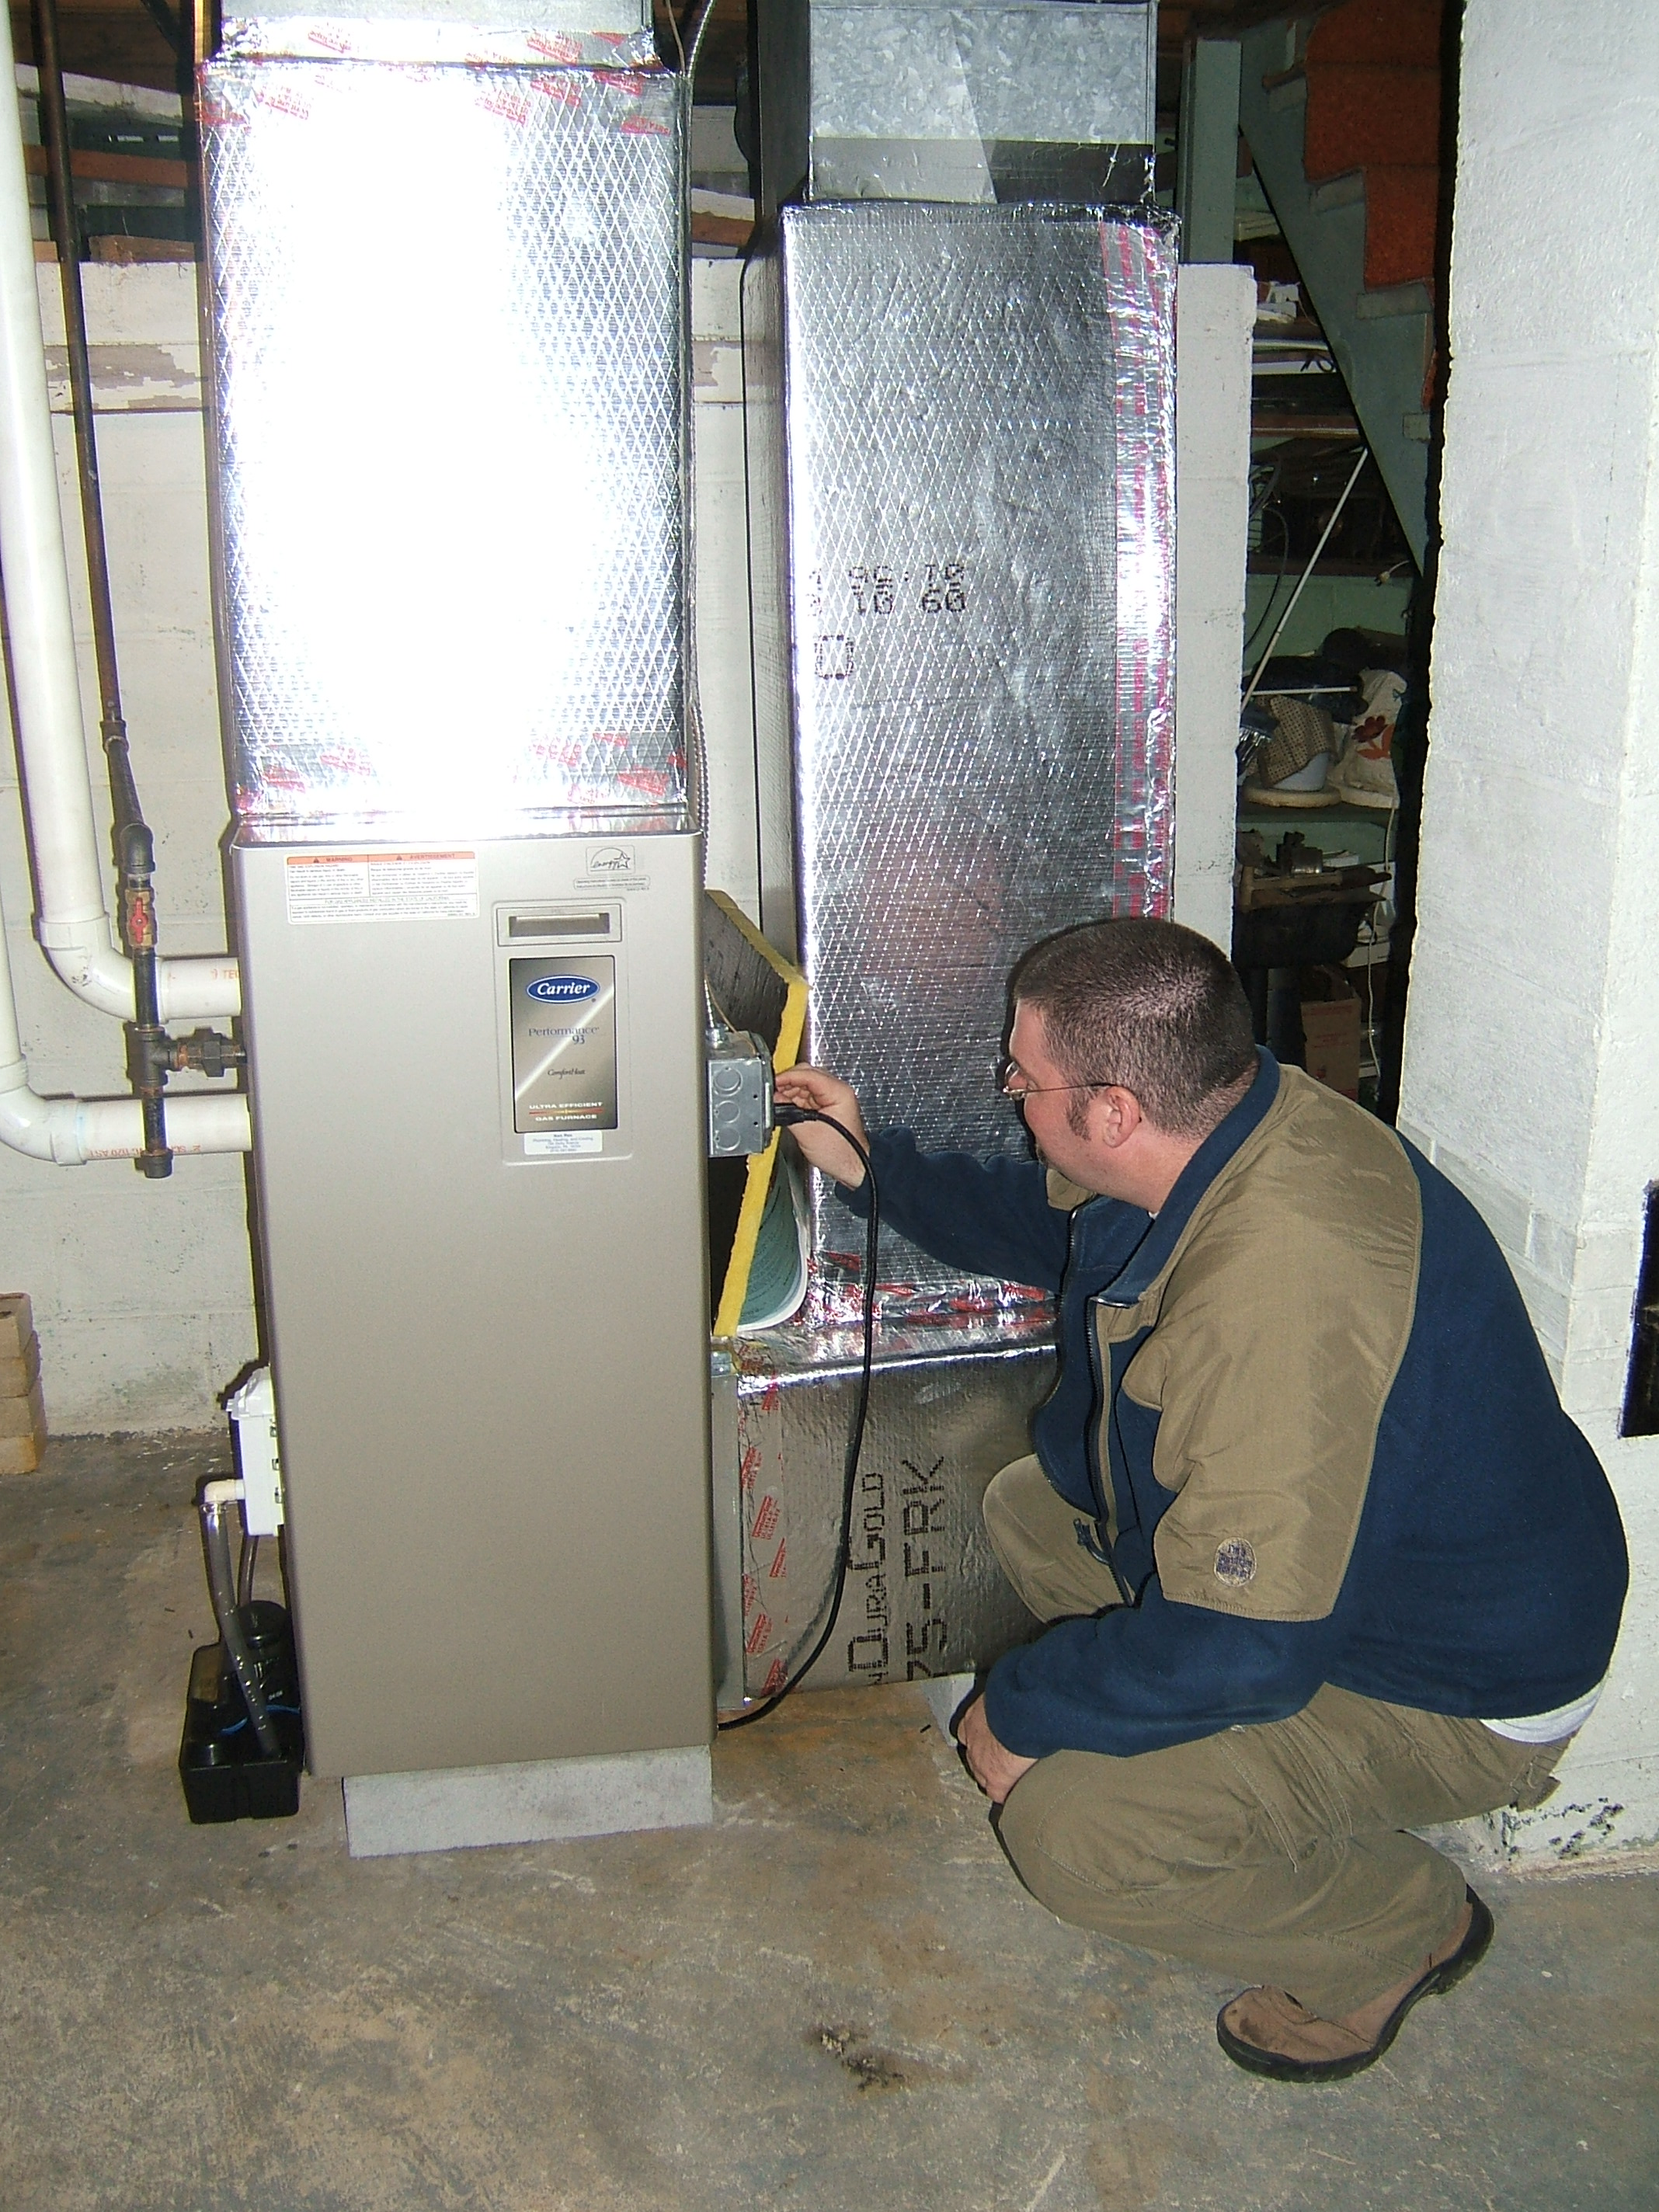 Checking Electric on Gas Furnace